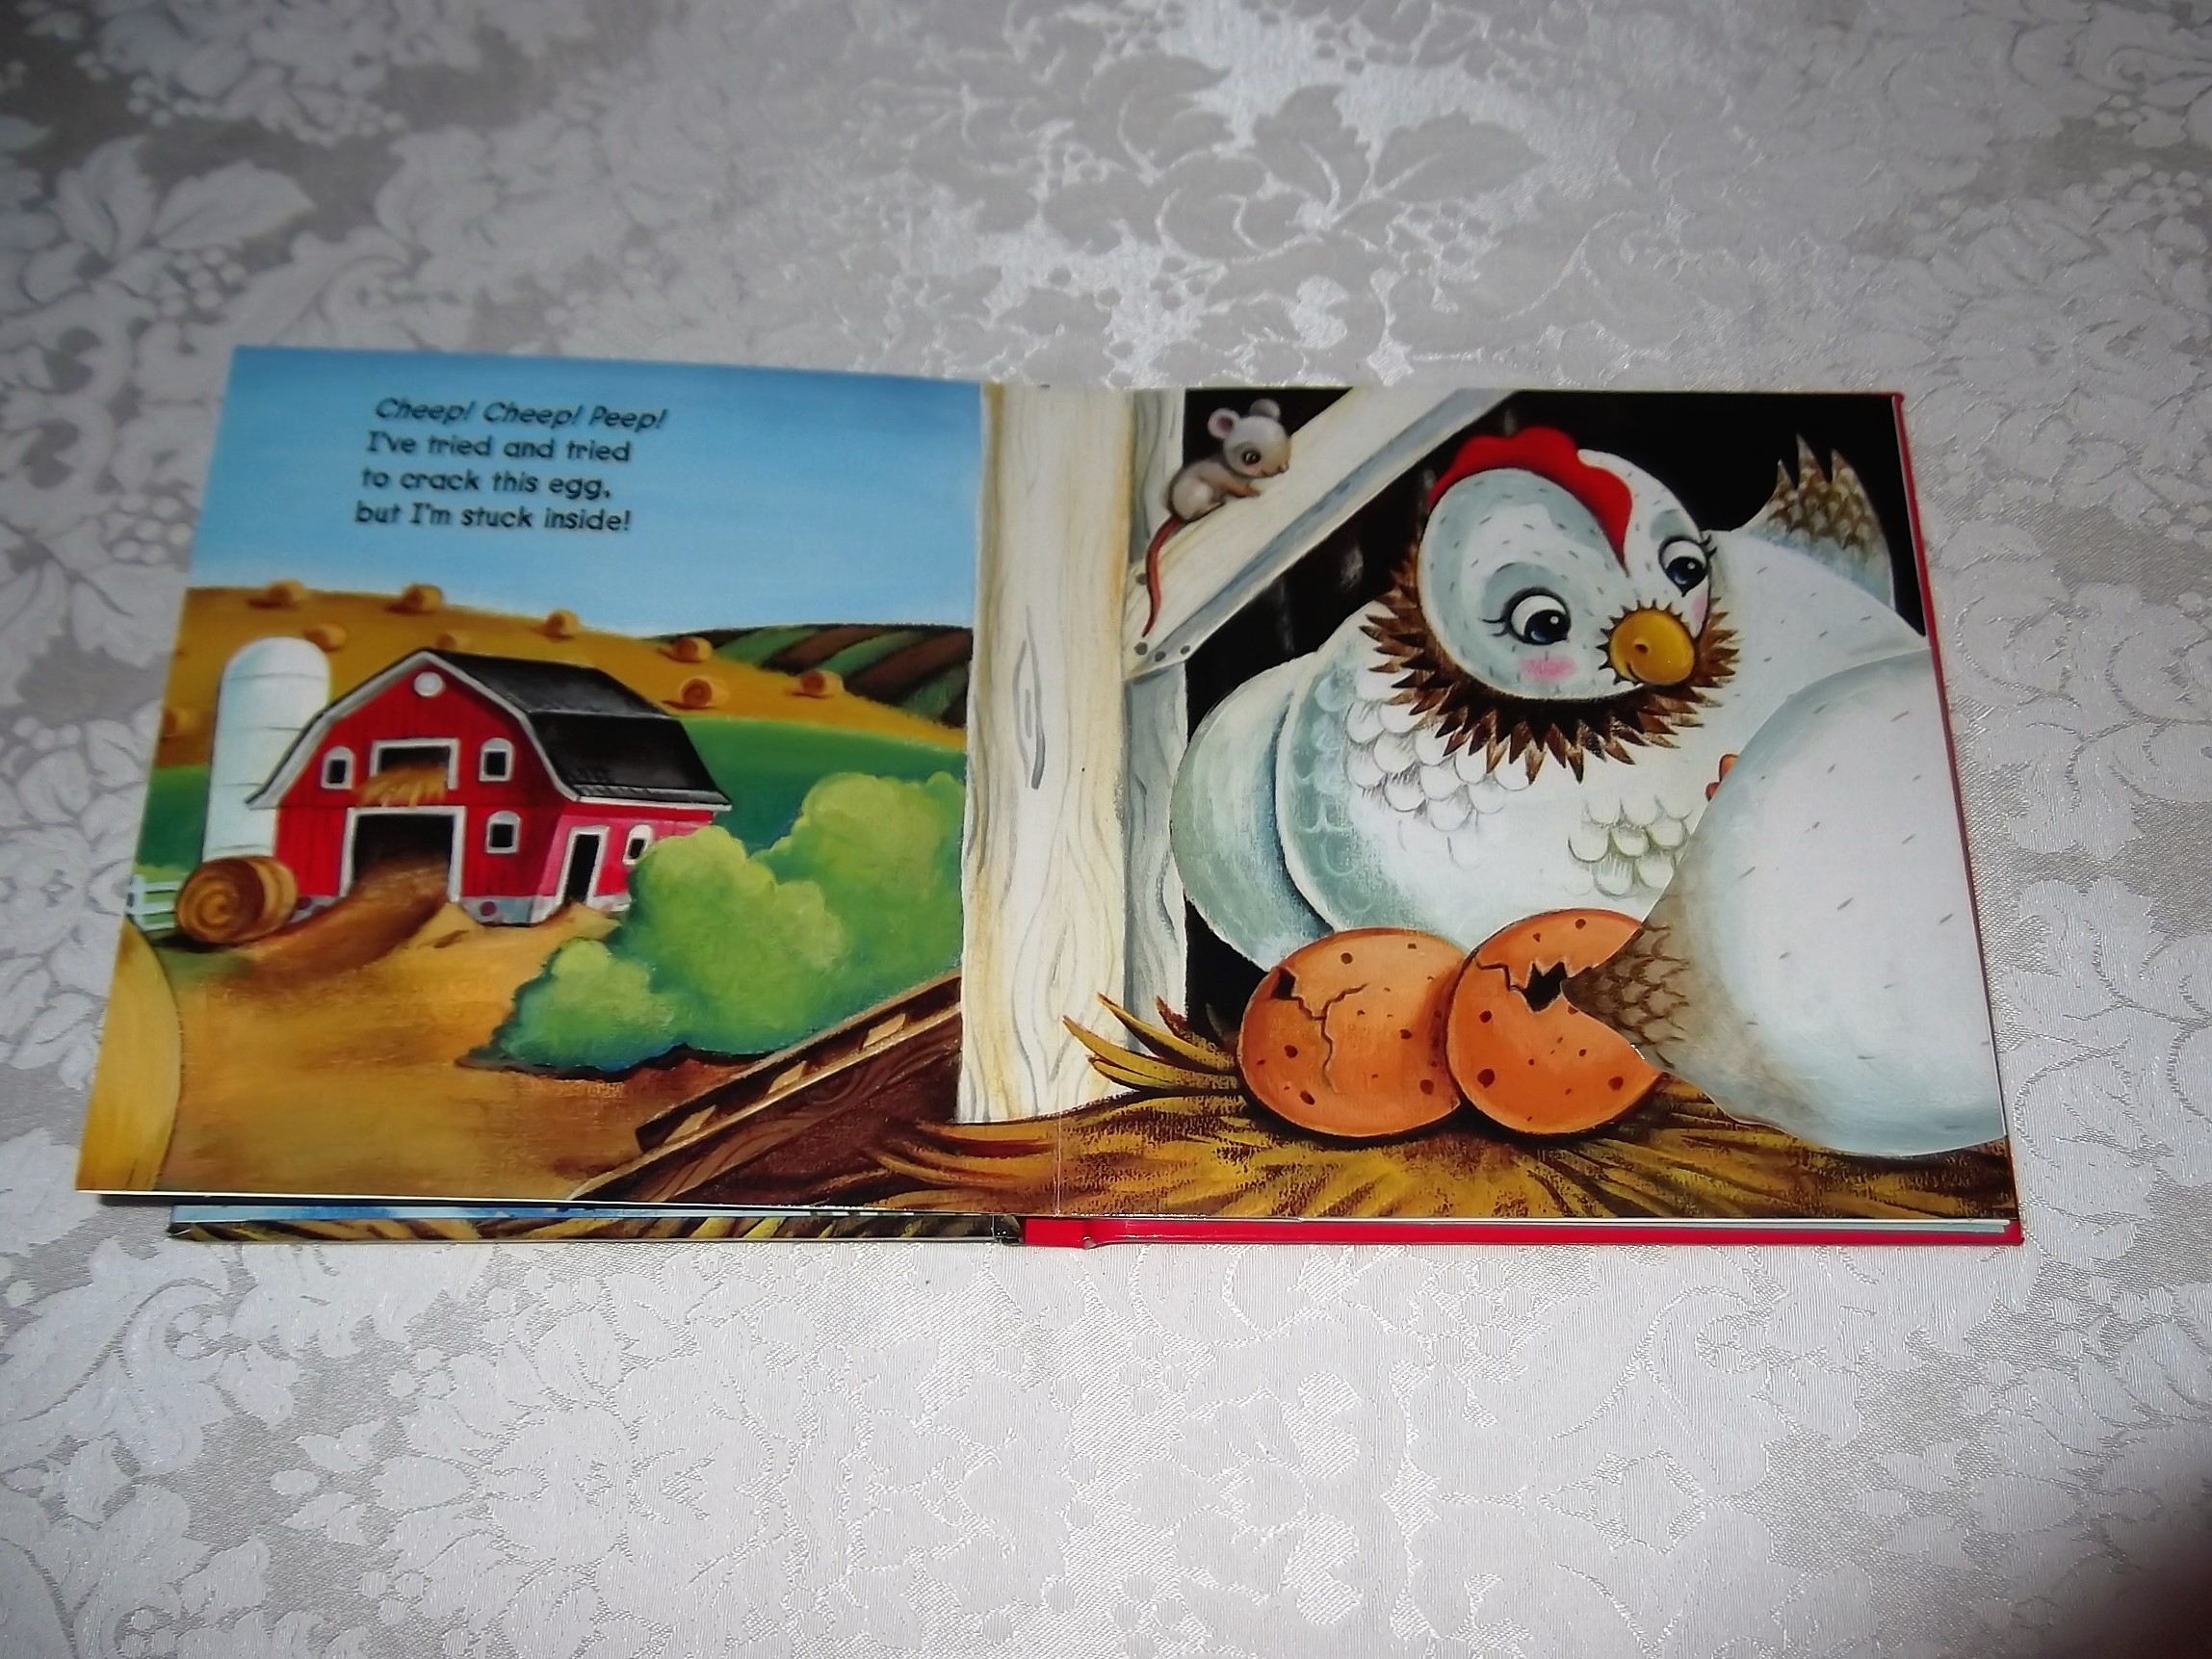 Image 5 of Guess Who Baby Animals Jodie Shepherd Brand New Lift A Flap HC